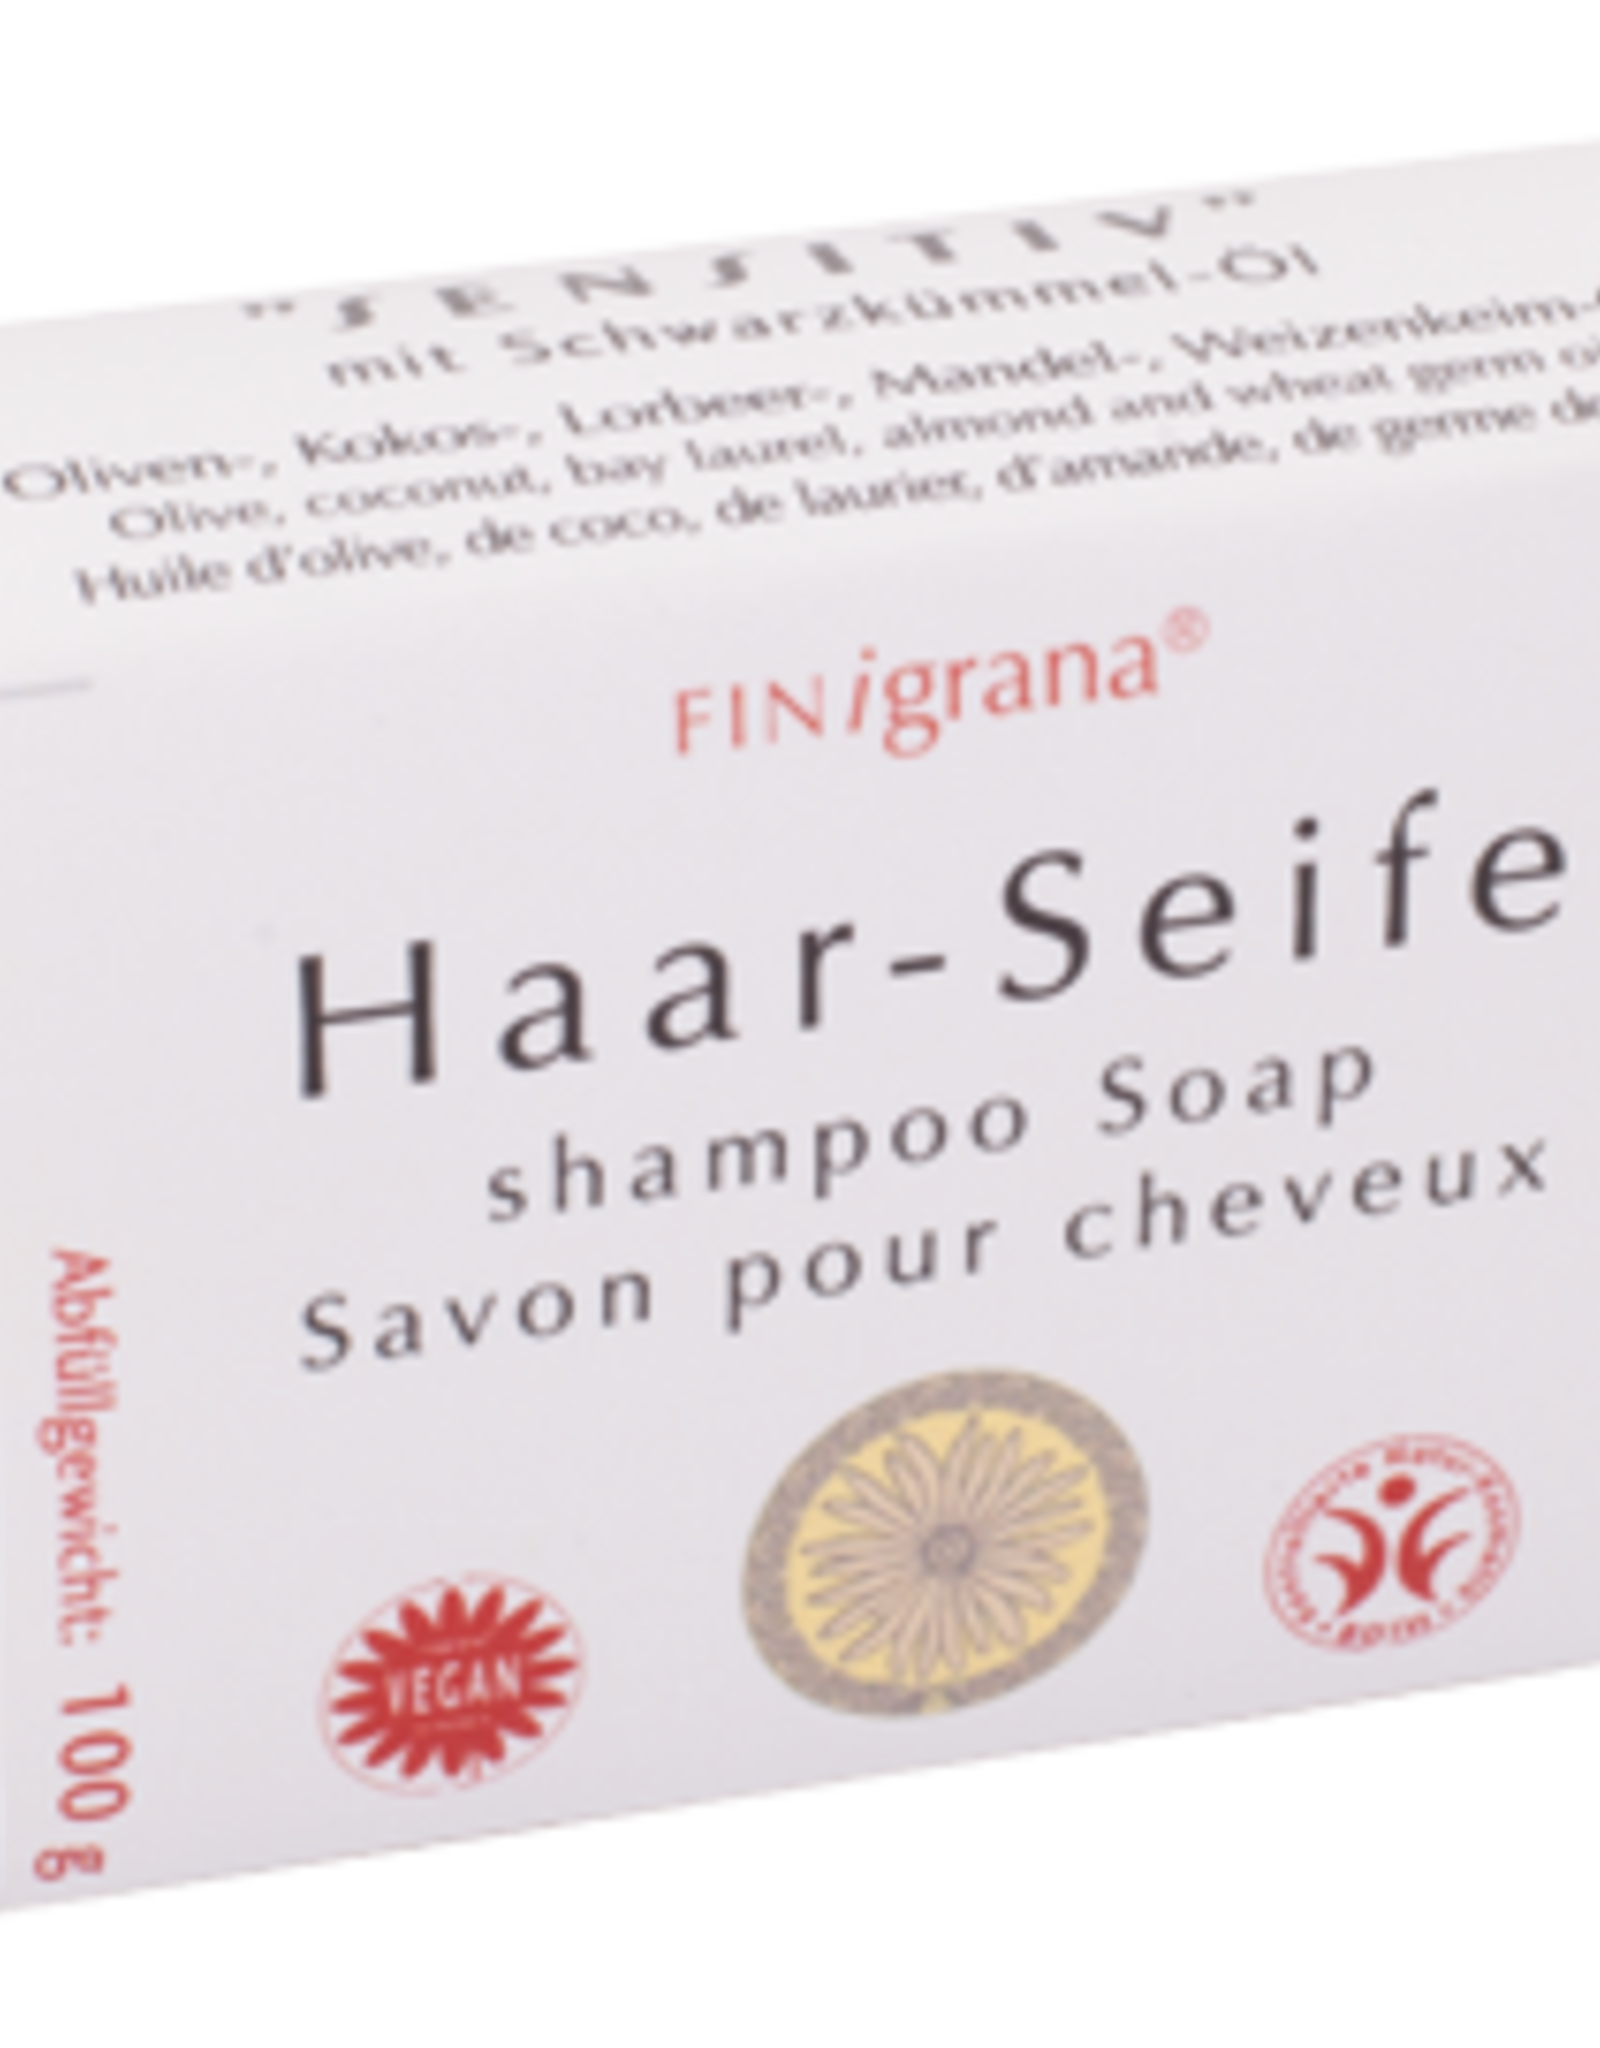 Shampoo Soap-Sensitive